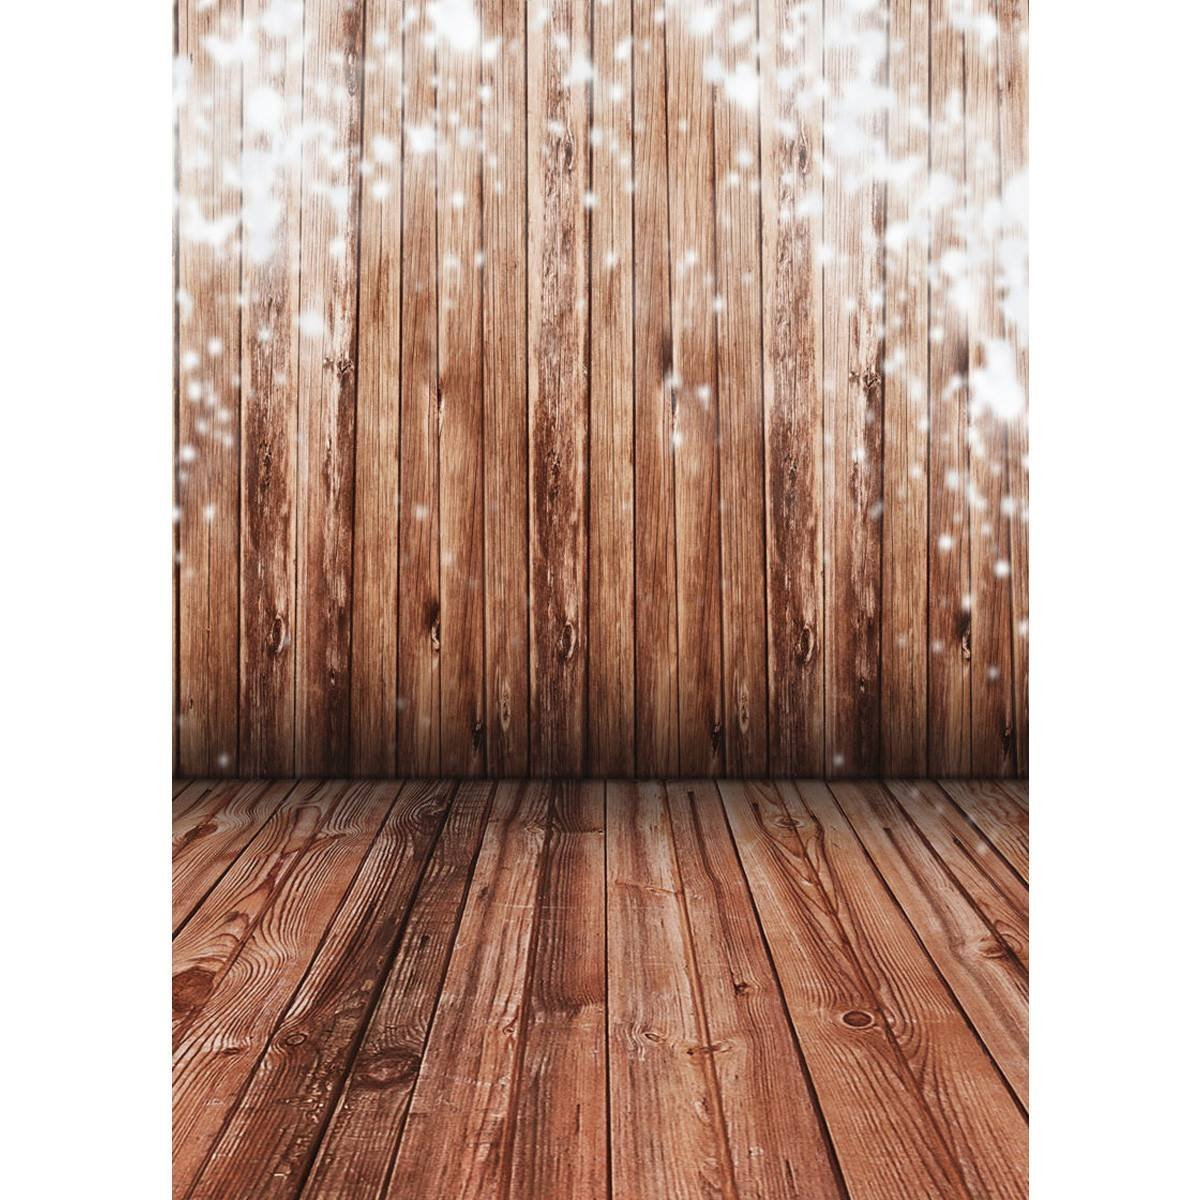 5*7FT Wood Floor Subject With Snowflake Photography Backdrop Nice Cloth Screen For Customer Indoor Photograph<br><br>Aliexpress